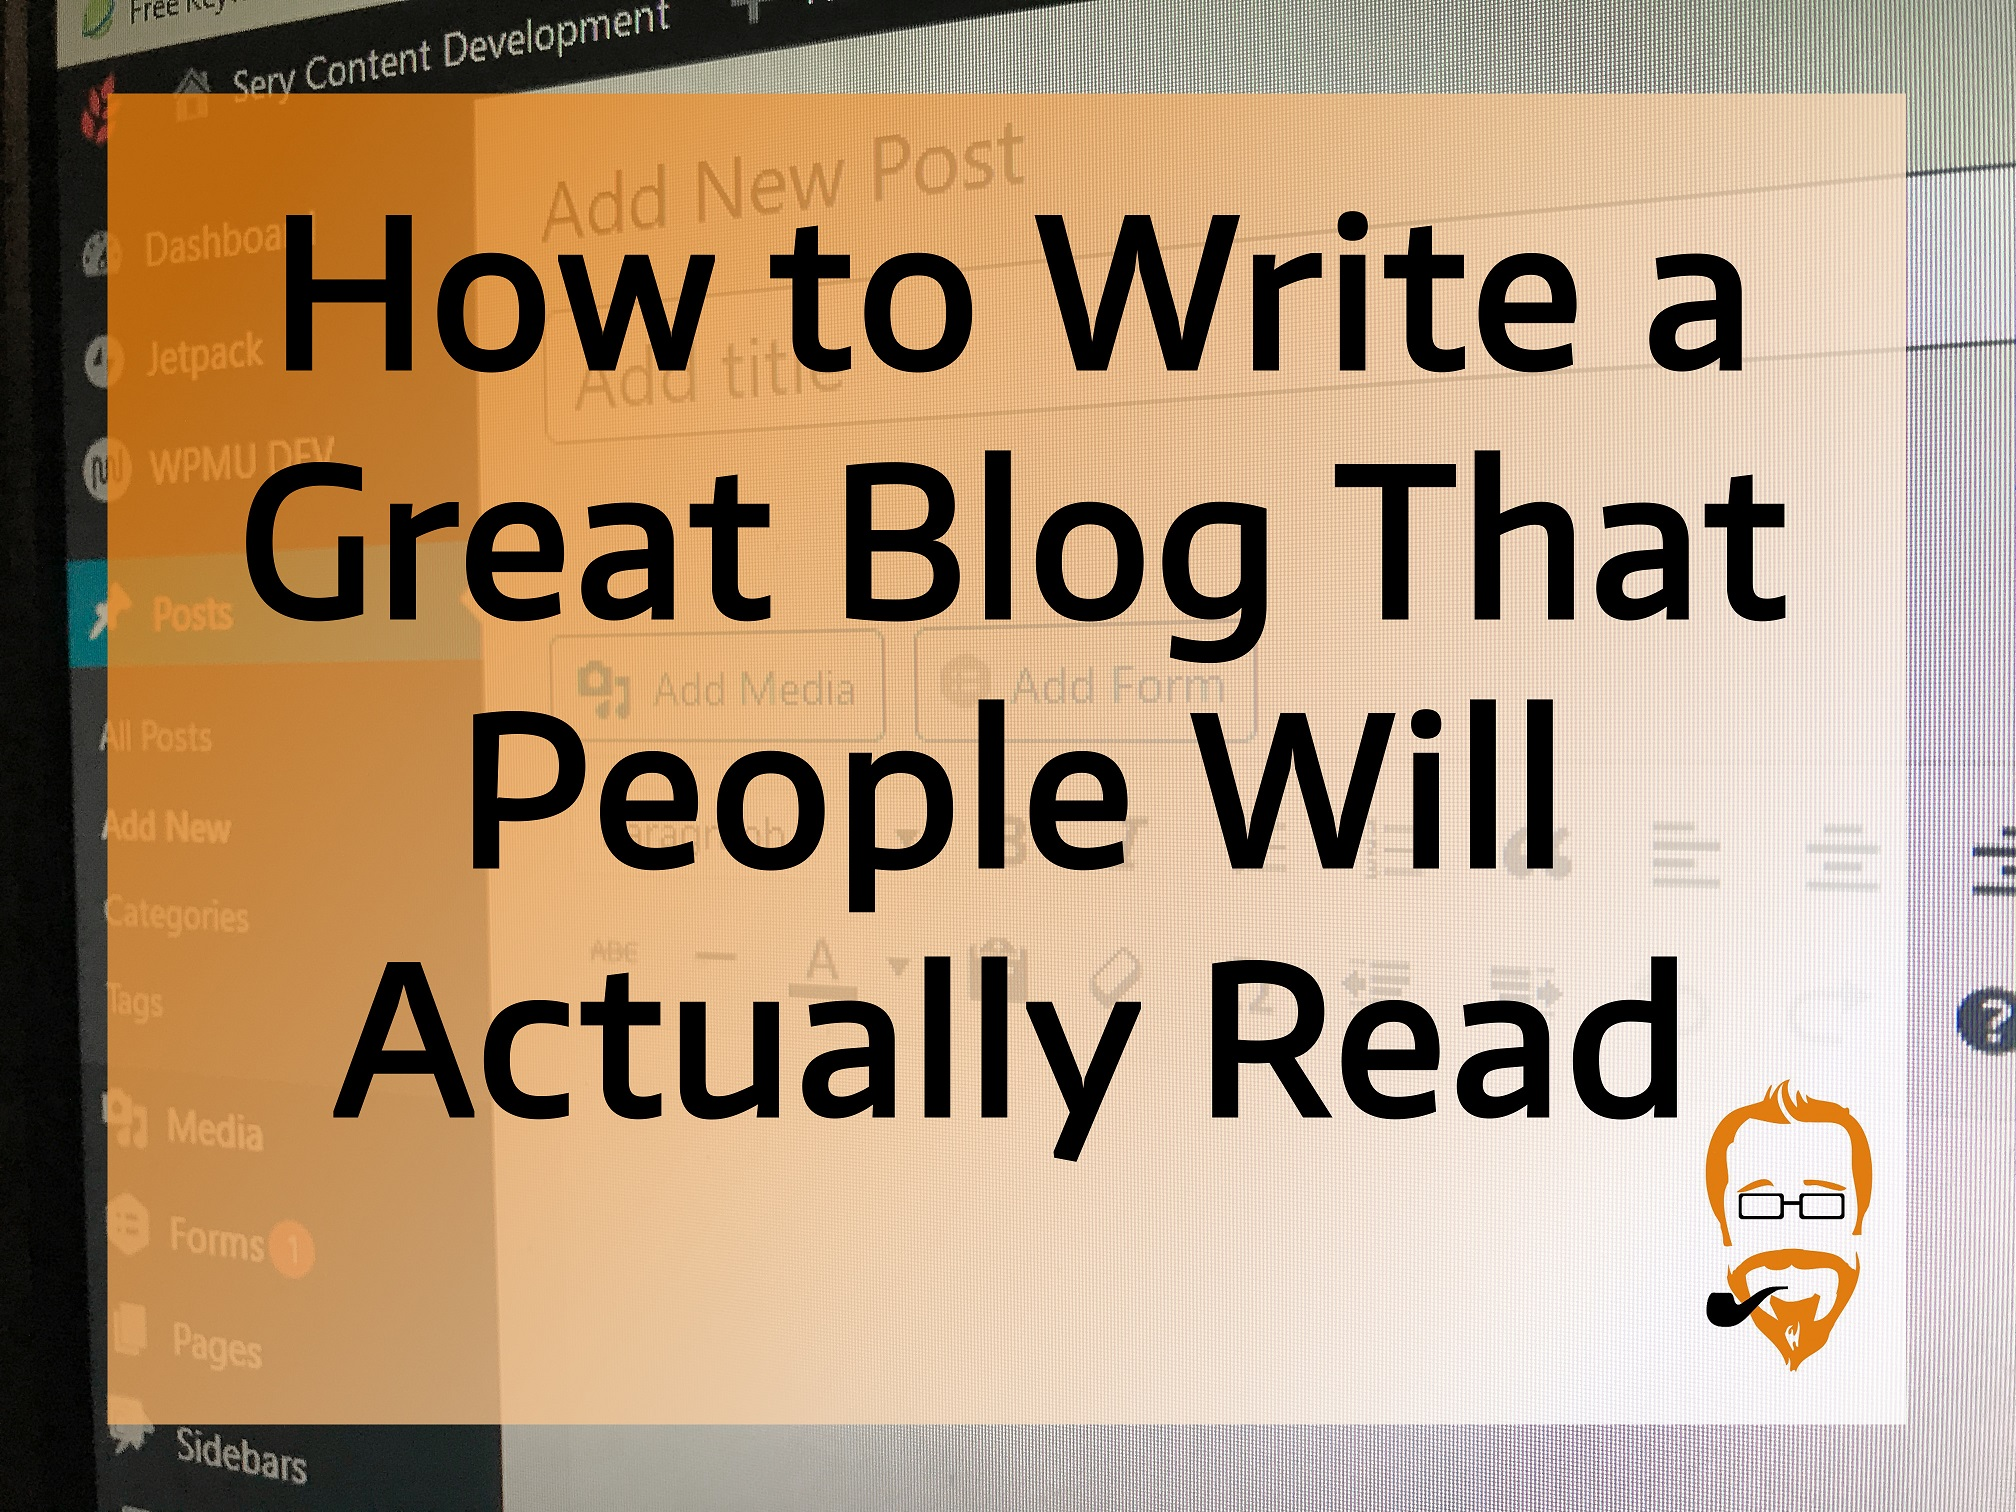 Write a great blog